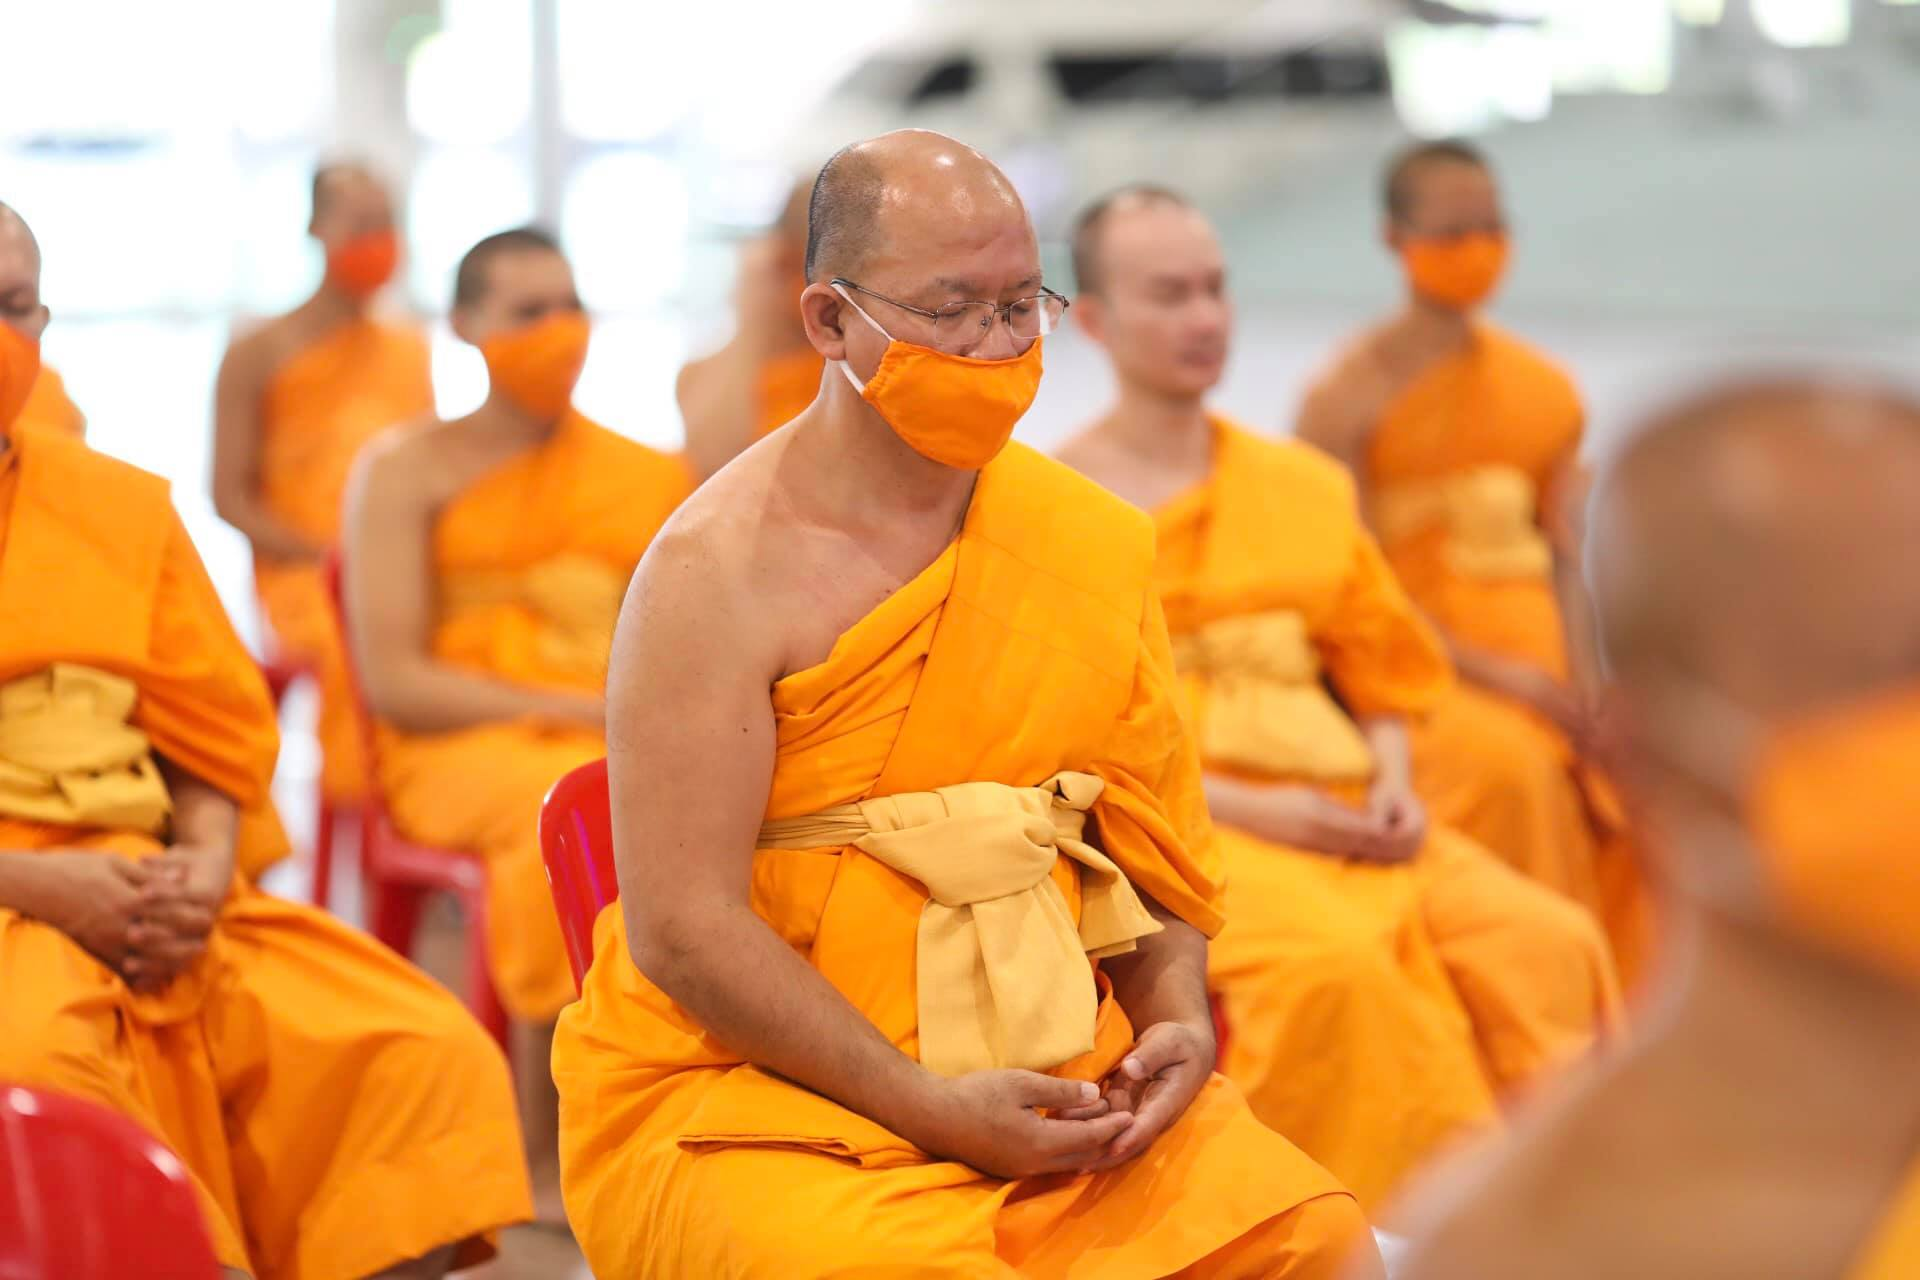 The Robe Offering Ceremony on Dhammachai Day, 27 Aug 2020